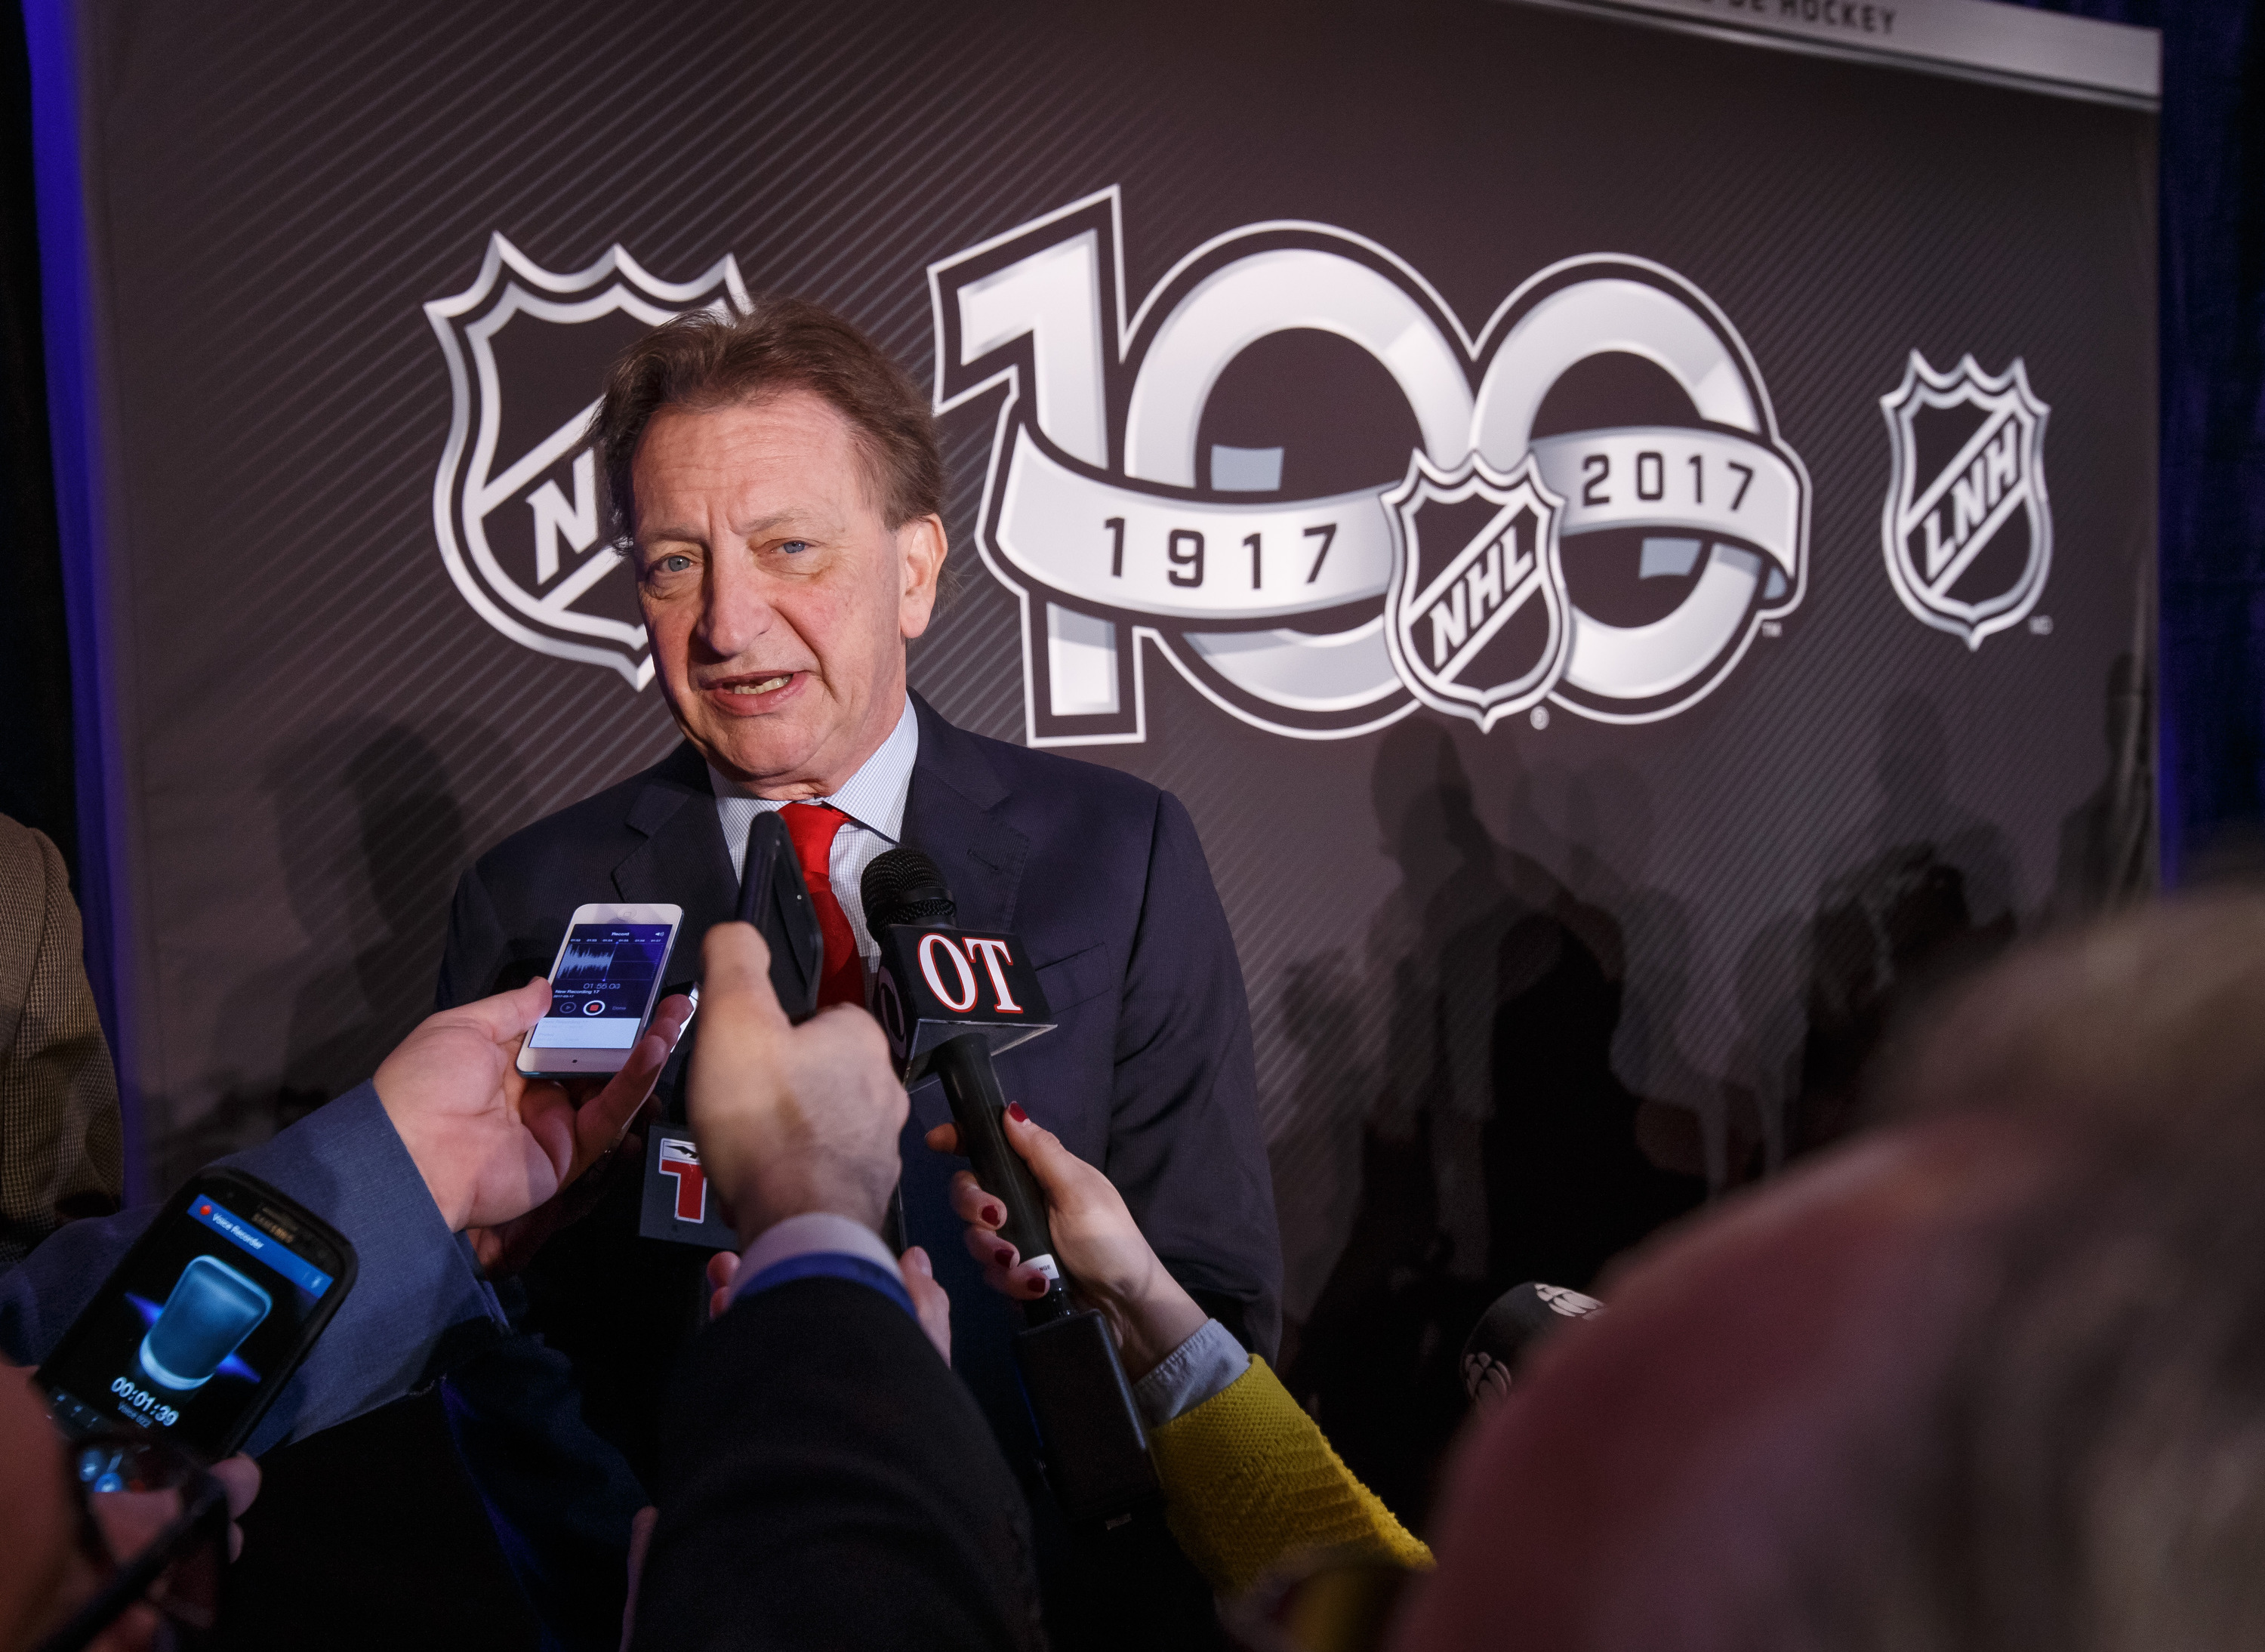 NHL Announces 2017 Scotiabank NHL 100 Classic